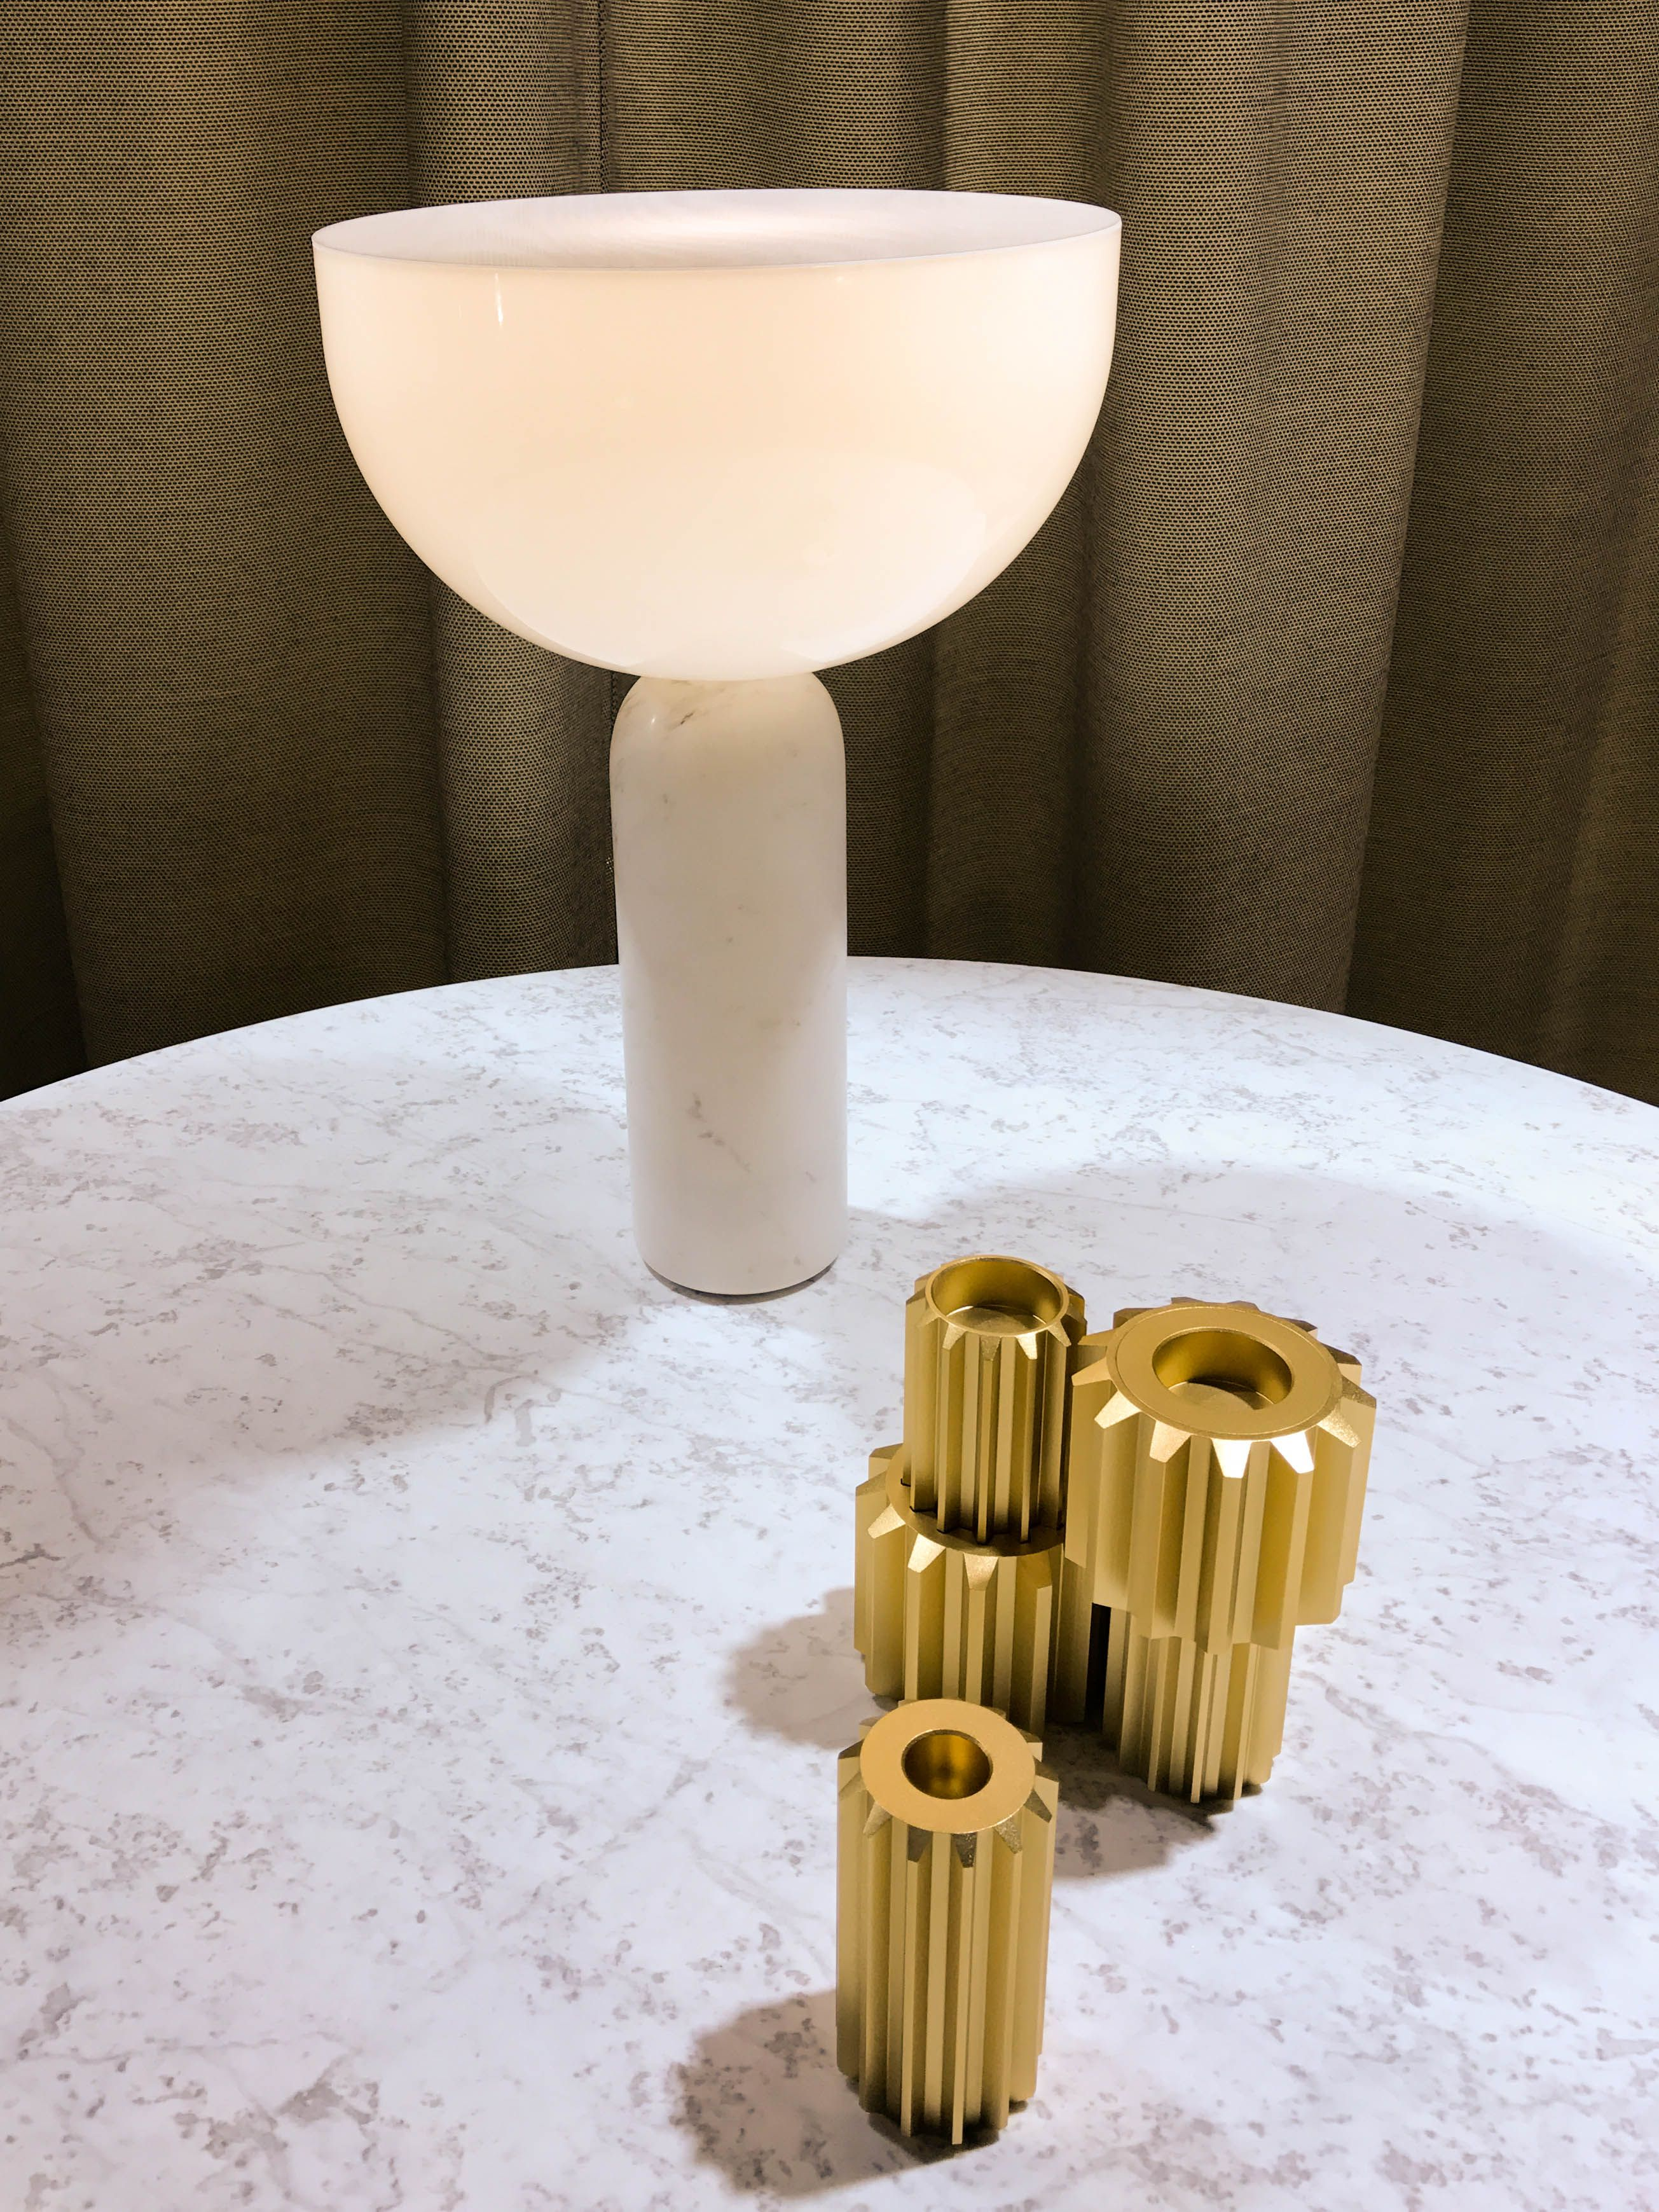 Gear Candle Holder By Rikke Frost And Kizu Table Lamp By Lars Tornoe For  New Works